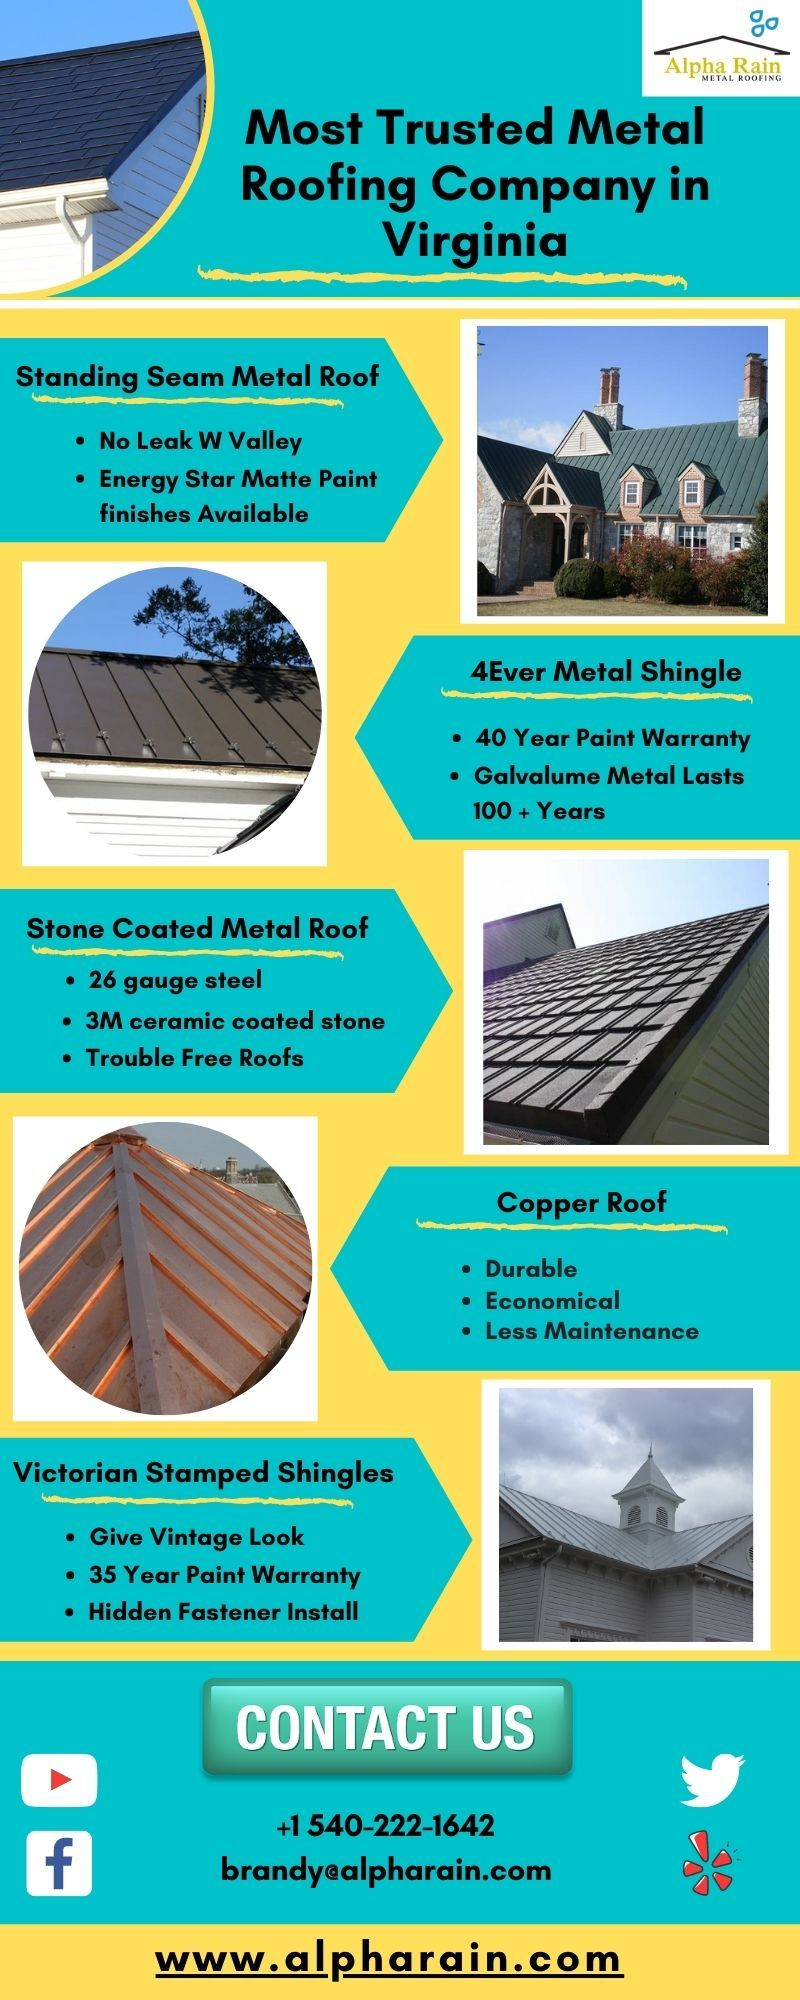 Style Your House With Copper Roofs At An Economical Price In 2020 Metal Roof Copper Roof Standing Seam Metal Roof